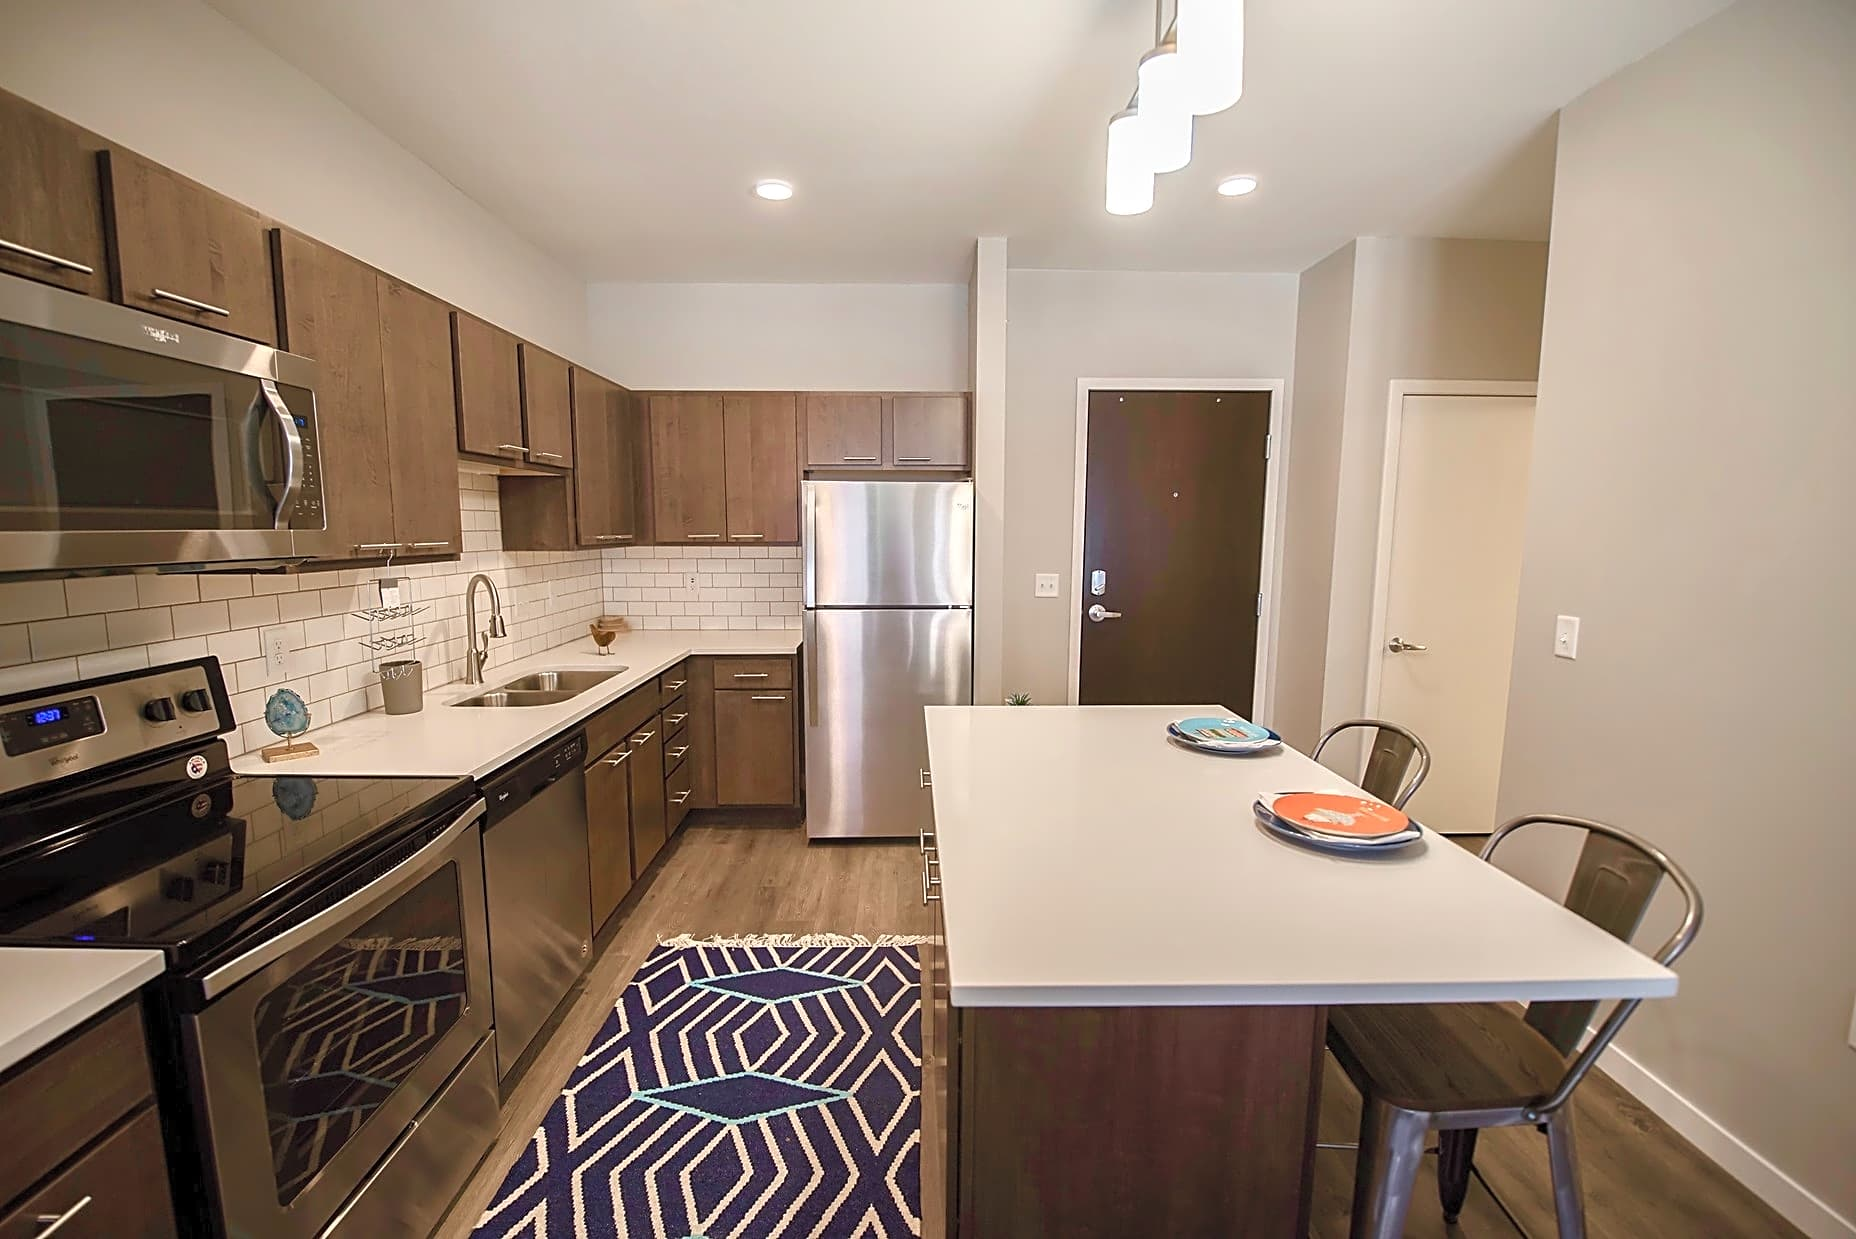 Apartments Near DMACC Confluence on 3rd for Des Moines Area Community College Students in Des Moines, IA